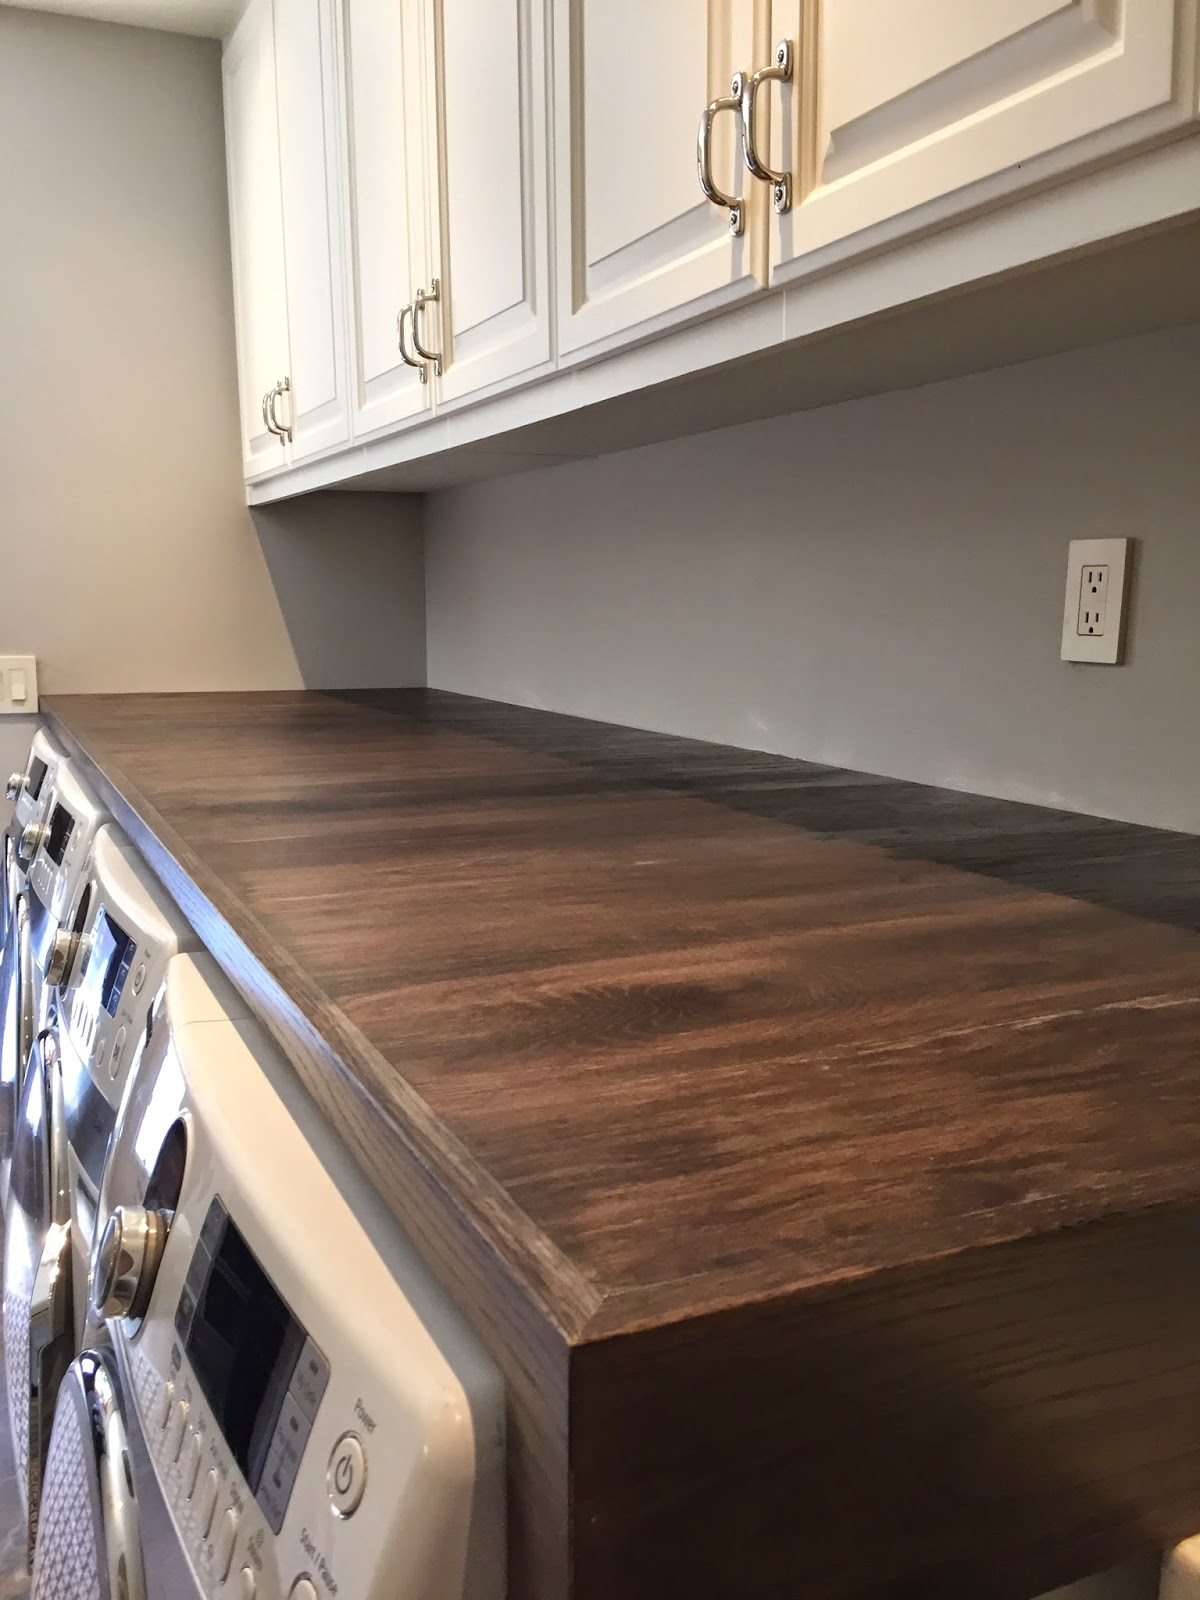 From Gardners 2 Bergers: Weatherwood Stained Laundry Room Oak Table .